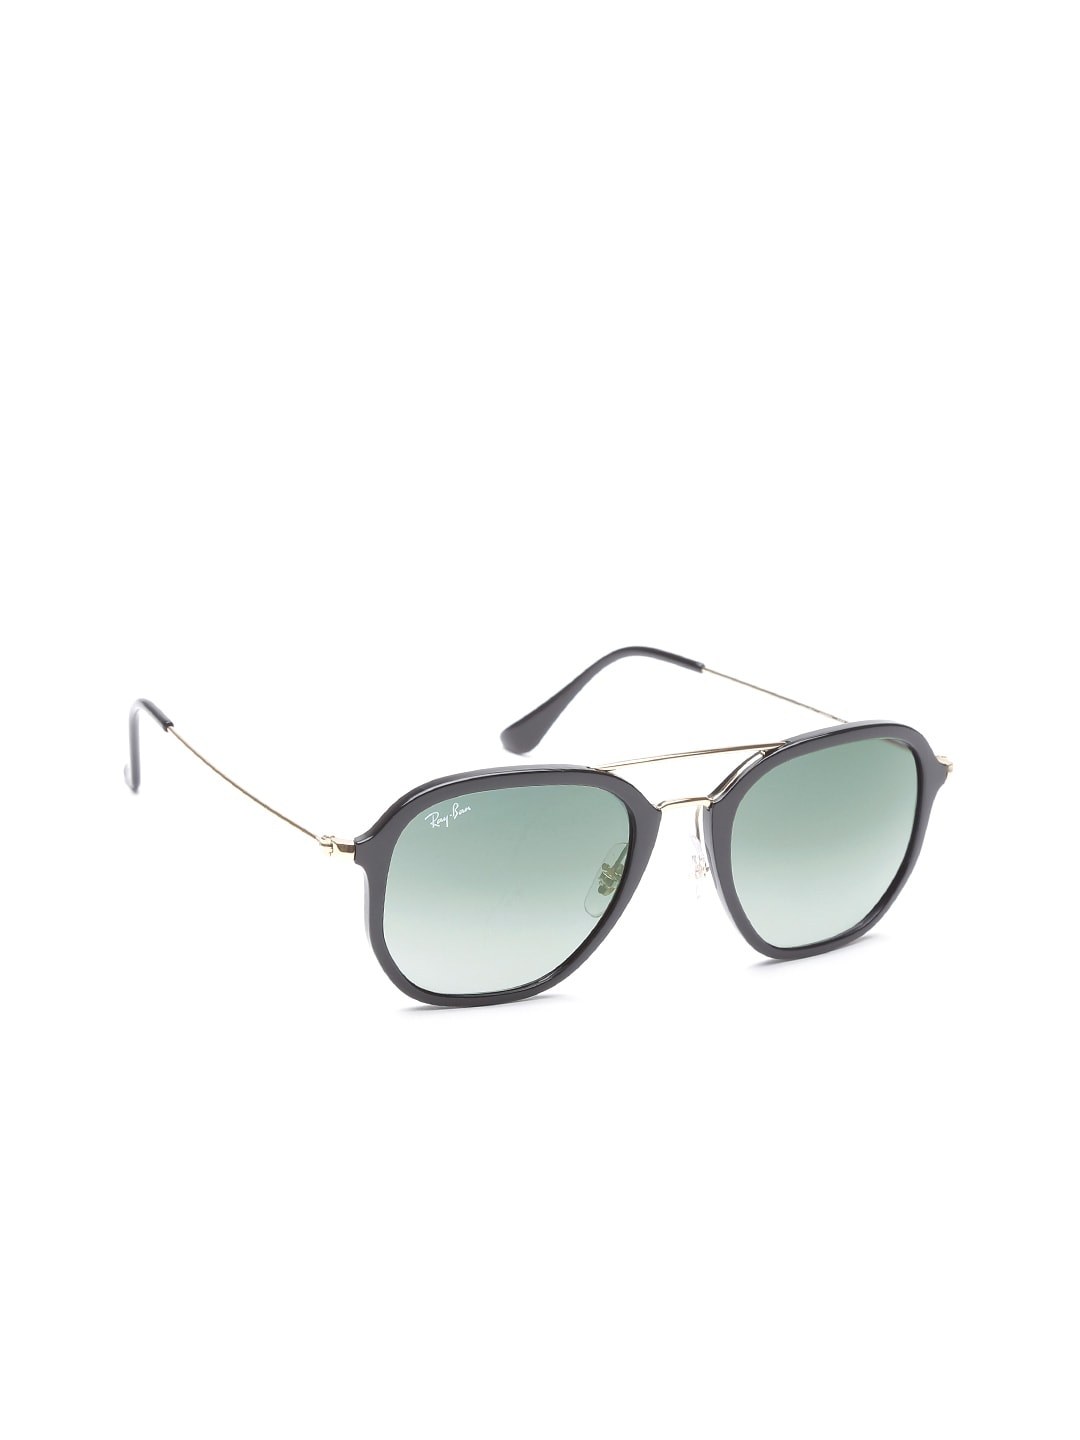 12ad07028c Ray Ban Sunglasses Face And Blusher Concealer - Buy Ray Ban Sunglasses Face  And Blusher Concealer online in India